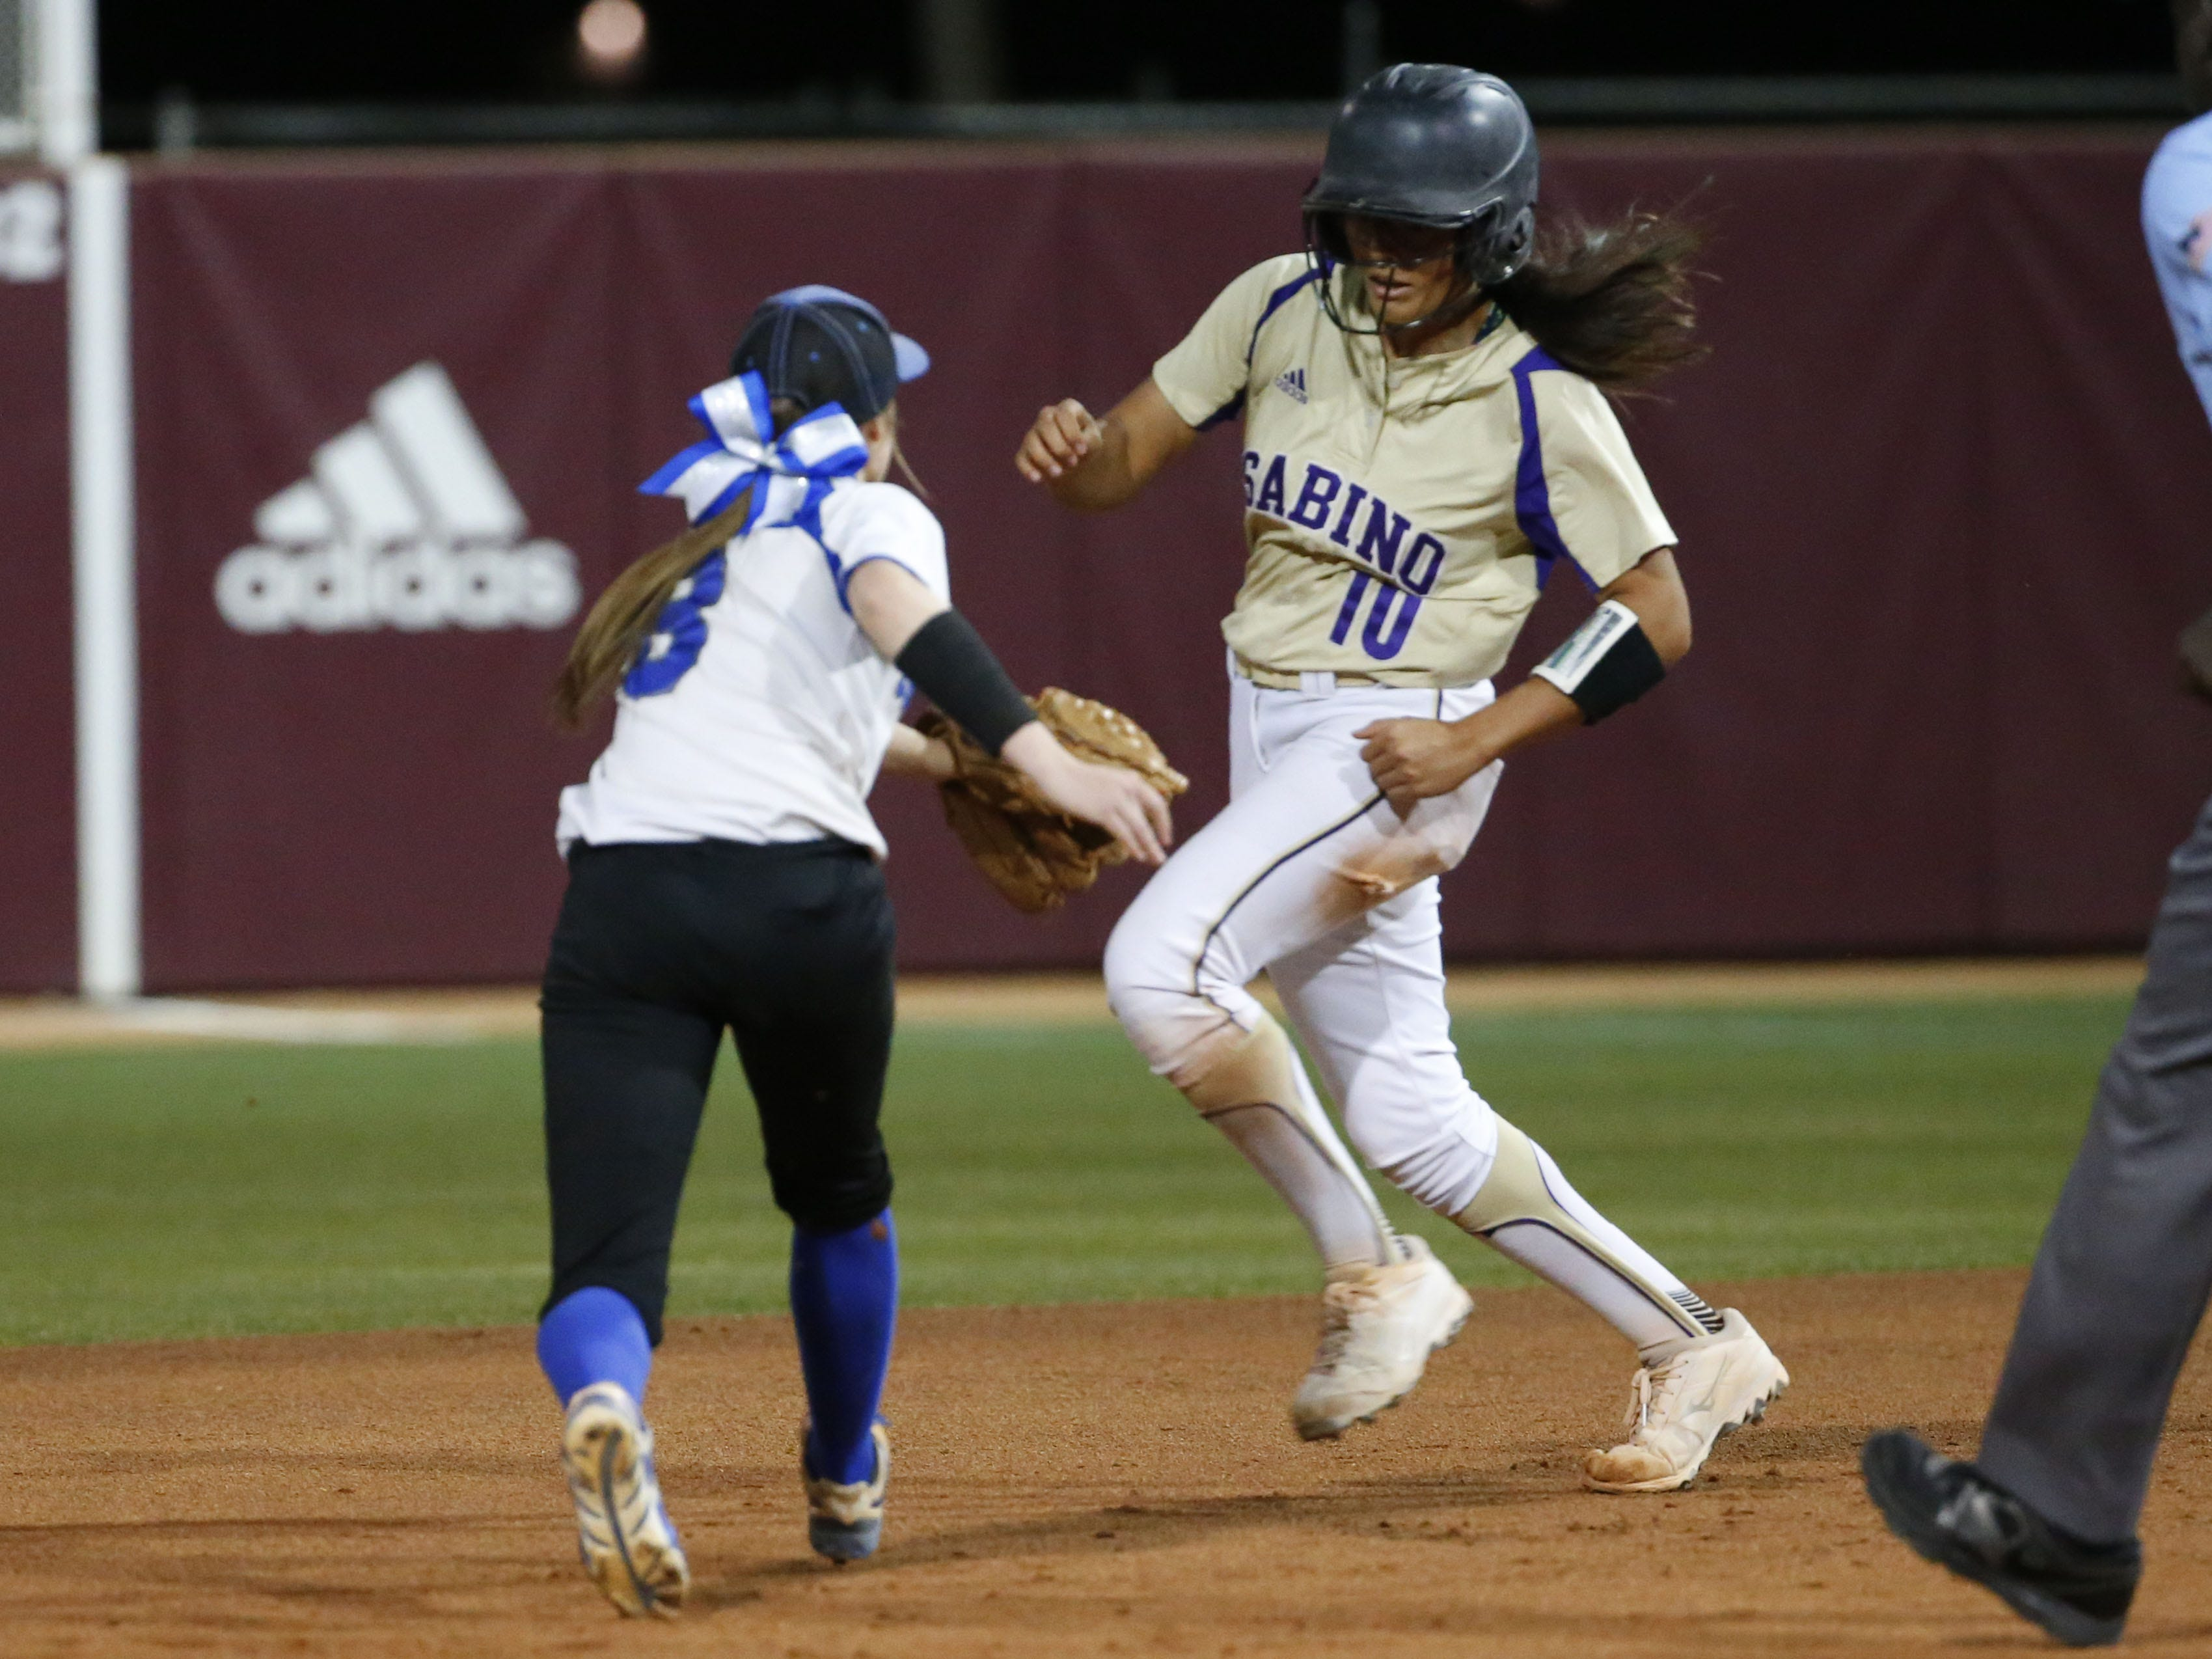 Sabino pitcher Danielle Kirchhofer (10) is tagged out by Snowflake center fielder Kaylee Thomas (8) during the 3A softball state championship game in Tempe May 6, 2019.